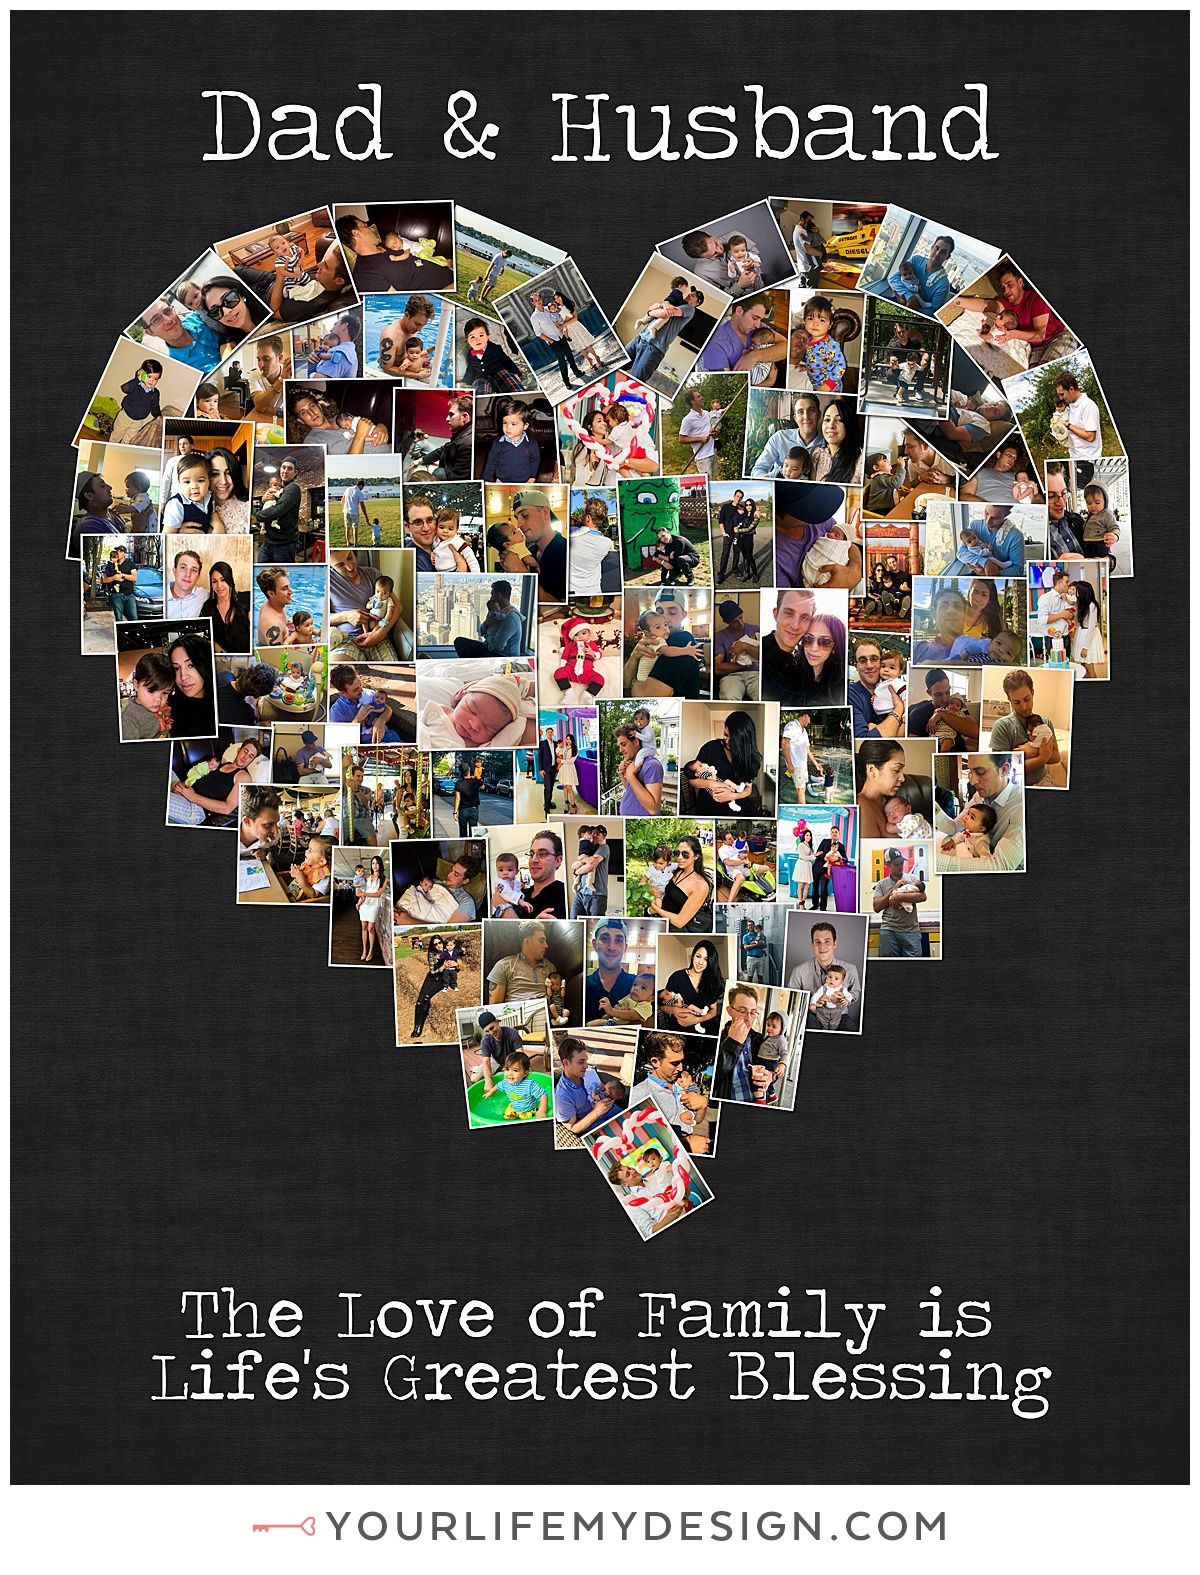 Heart Collage : heart, collage, 16x20, Photos, CollageDesign, Http://yourlifemydesign.com/, #gift, #giftideas, #anniversar…, Heart, Photo, Collage,, Memory, Shaped, Collage